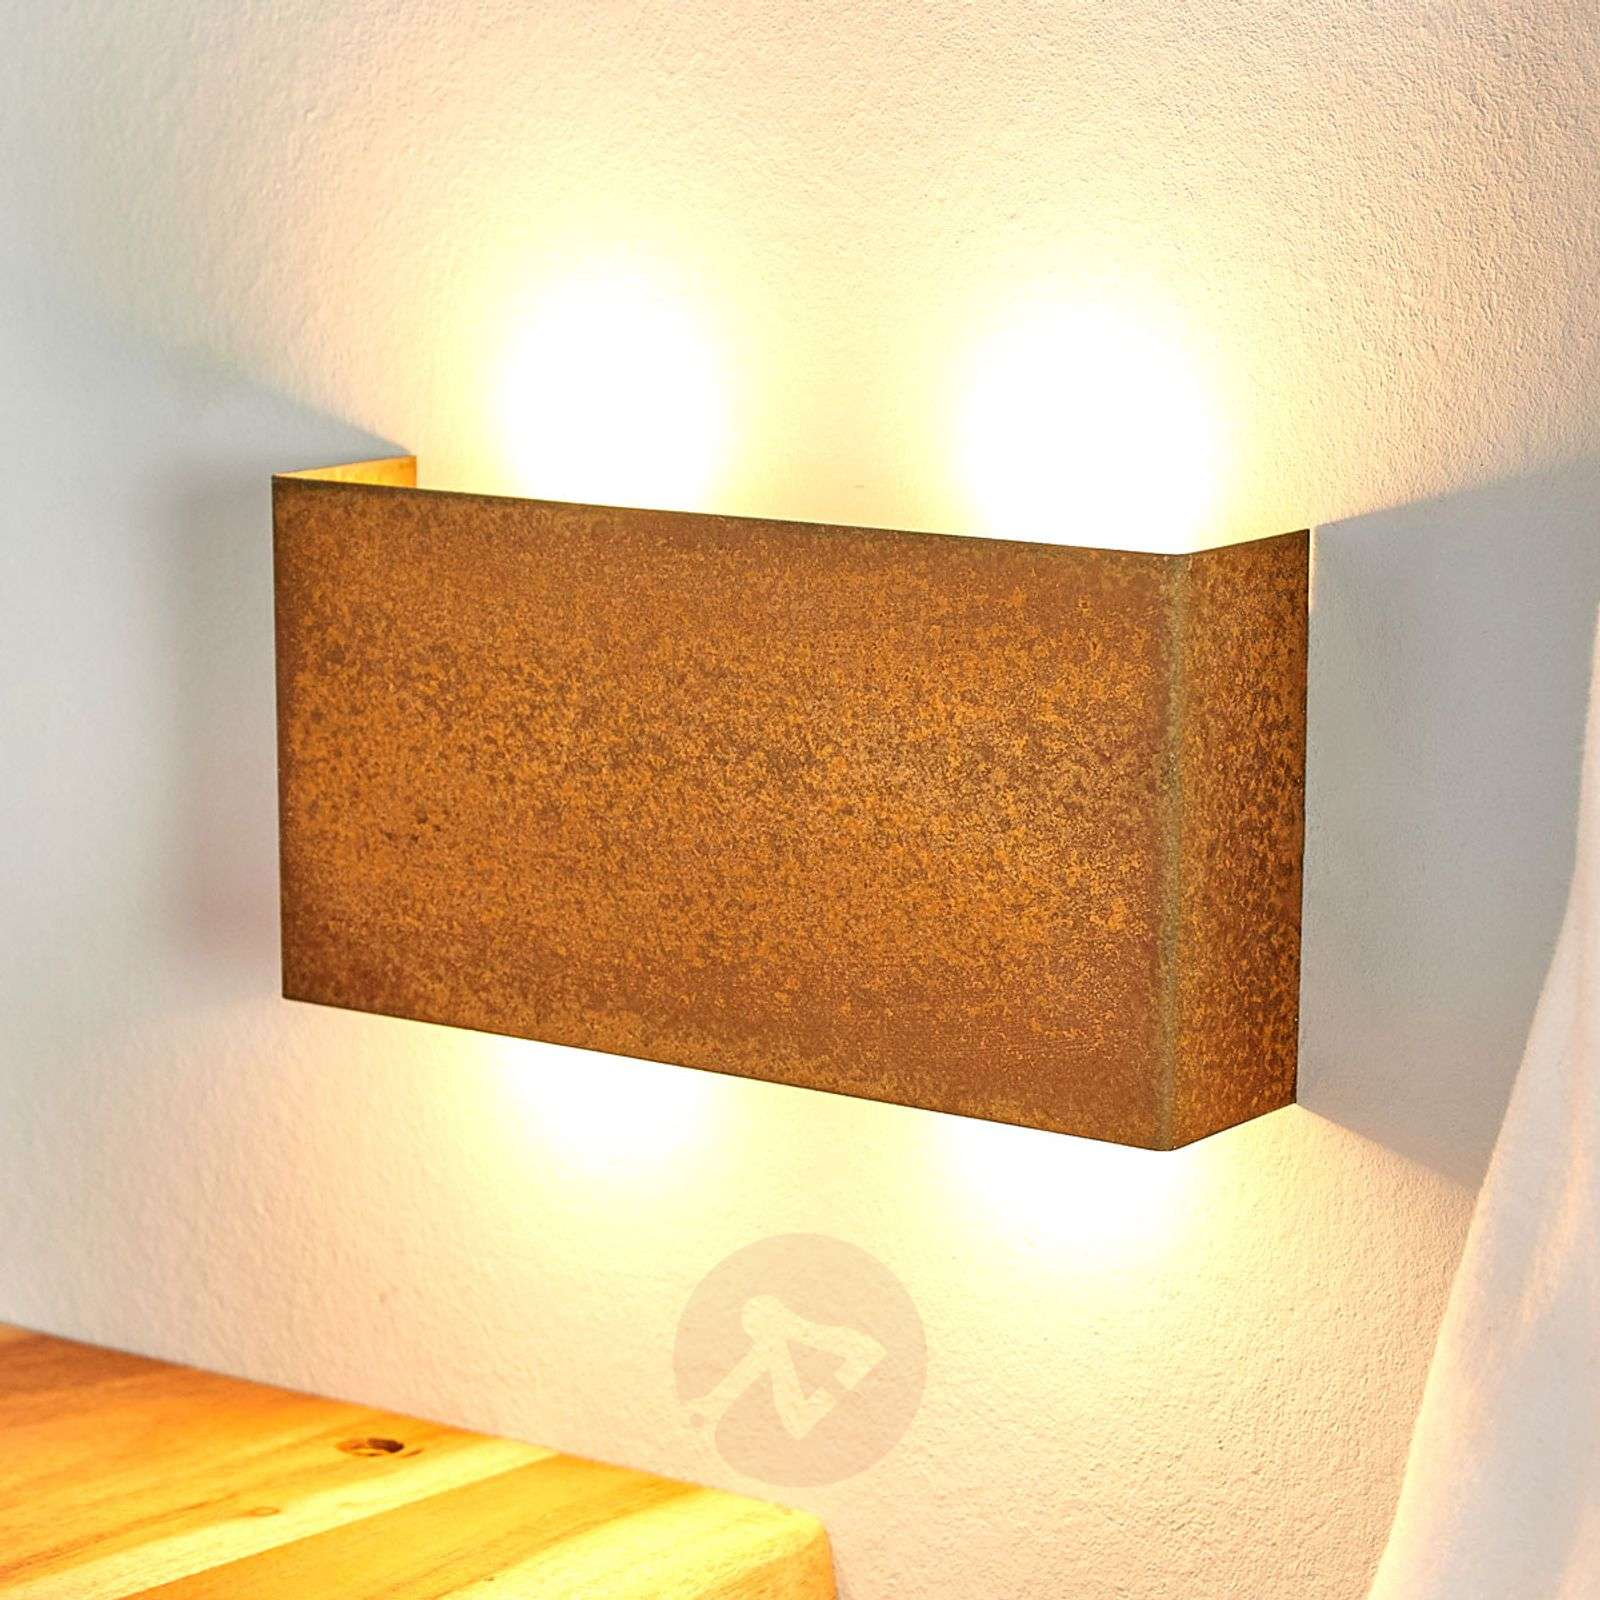 Dimmable led wall lamp maja in a rust look lights dimmable led wall lamp maja in a rust look 6722436 01 aloadofball Image collections